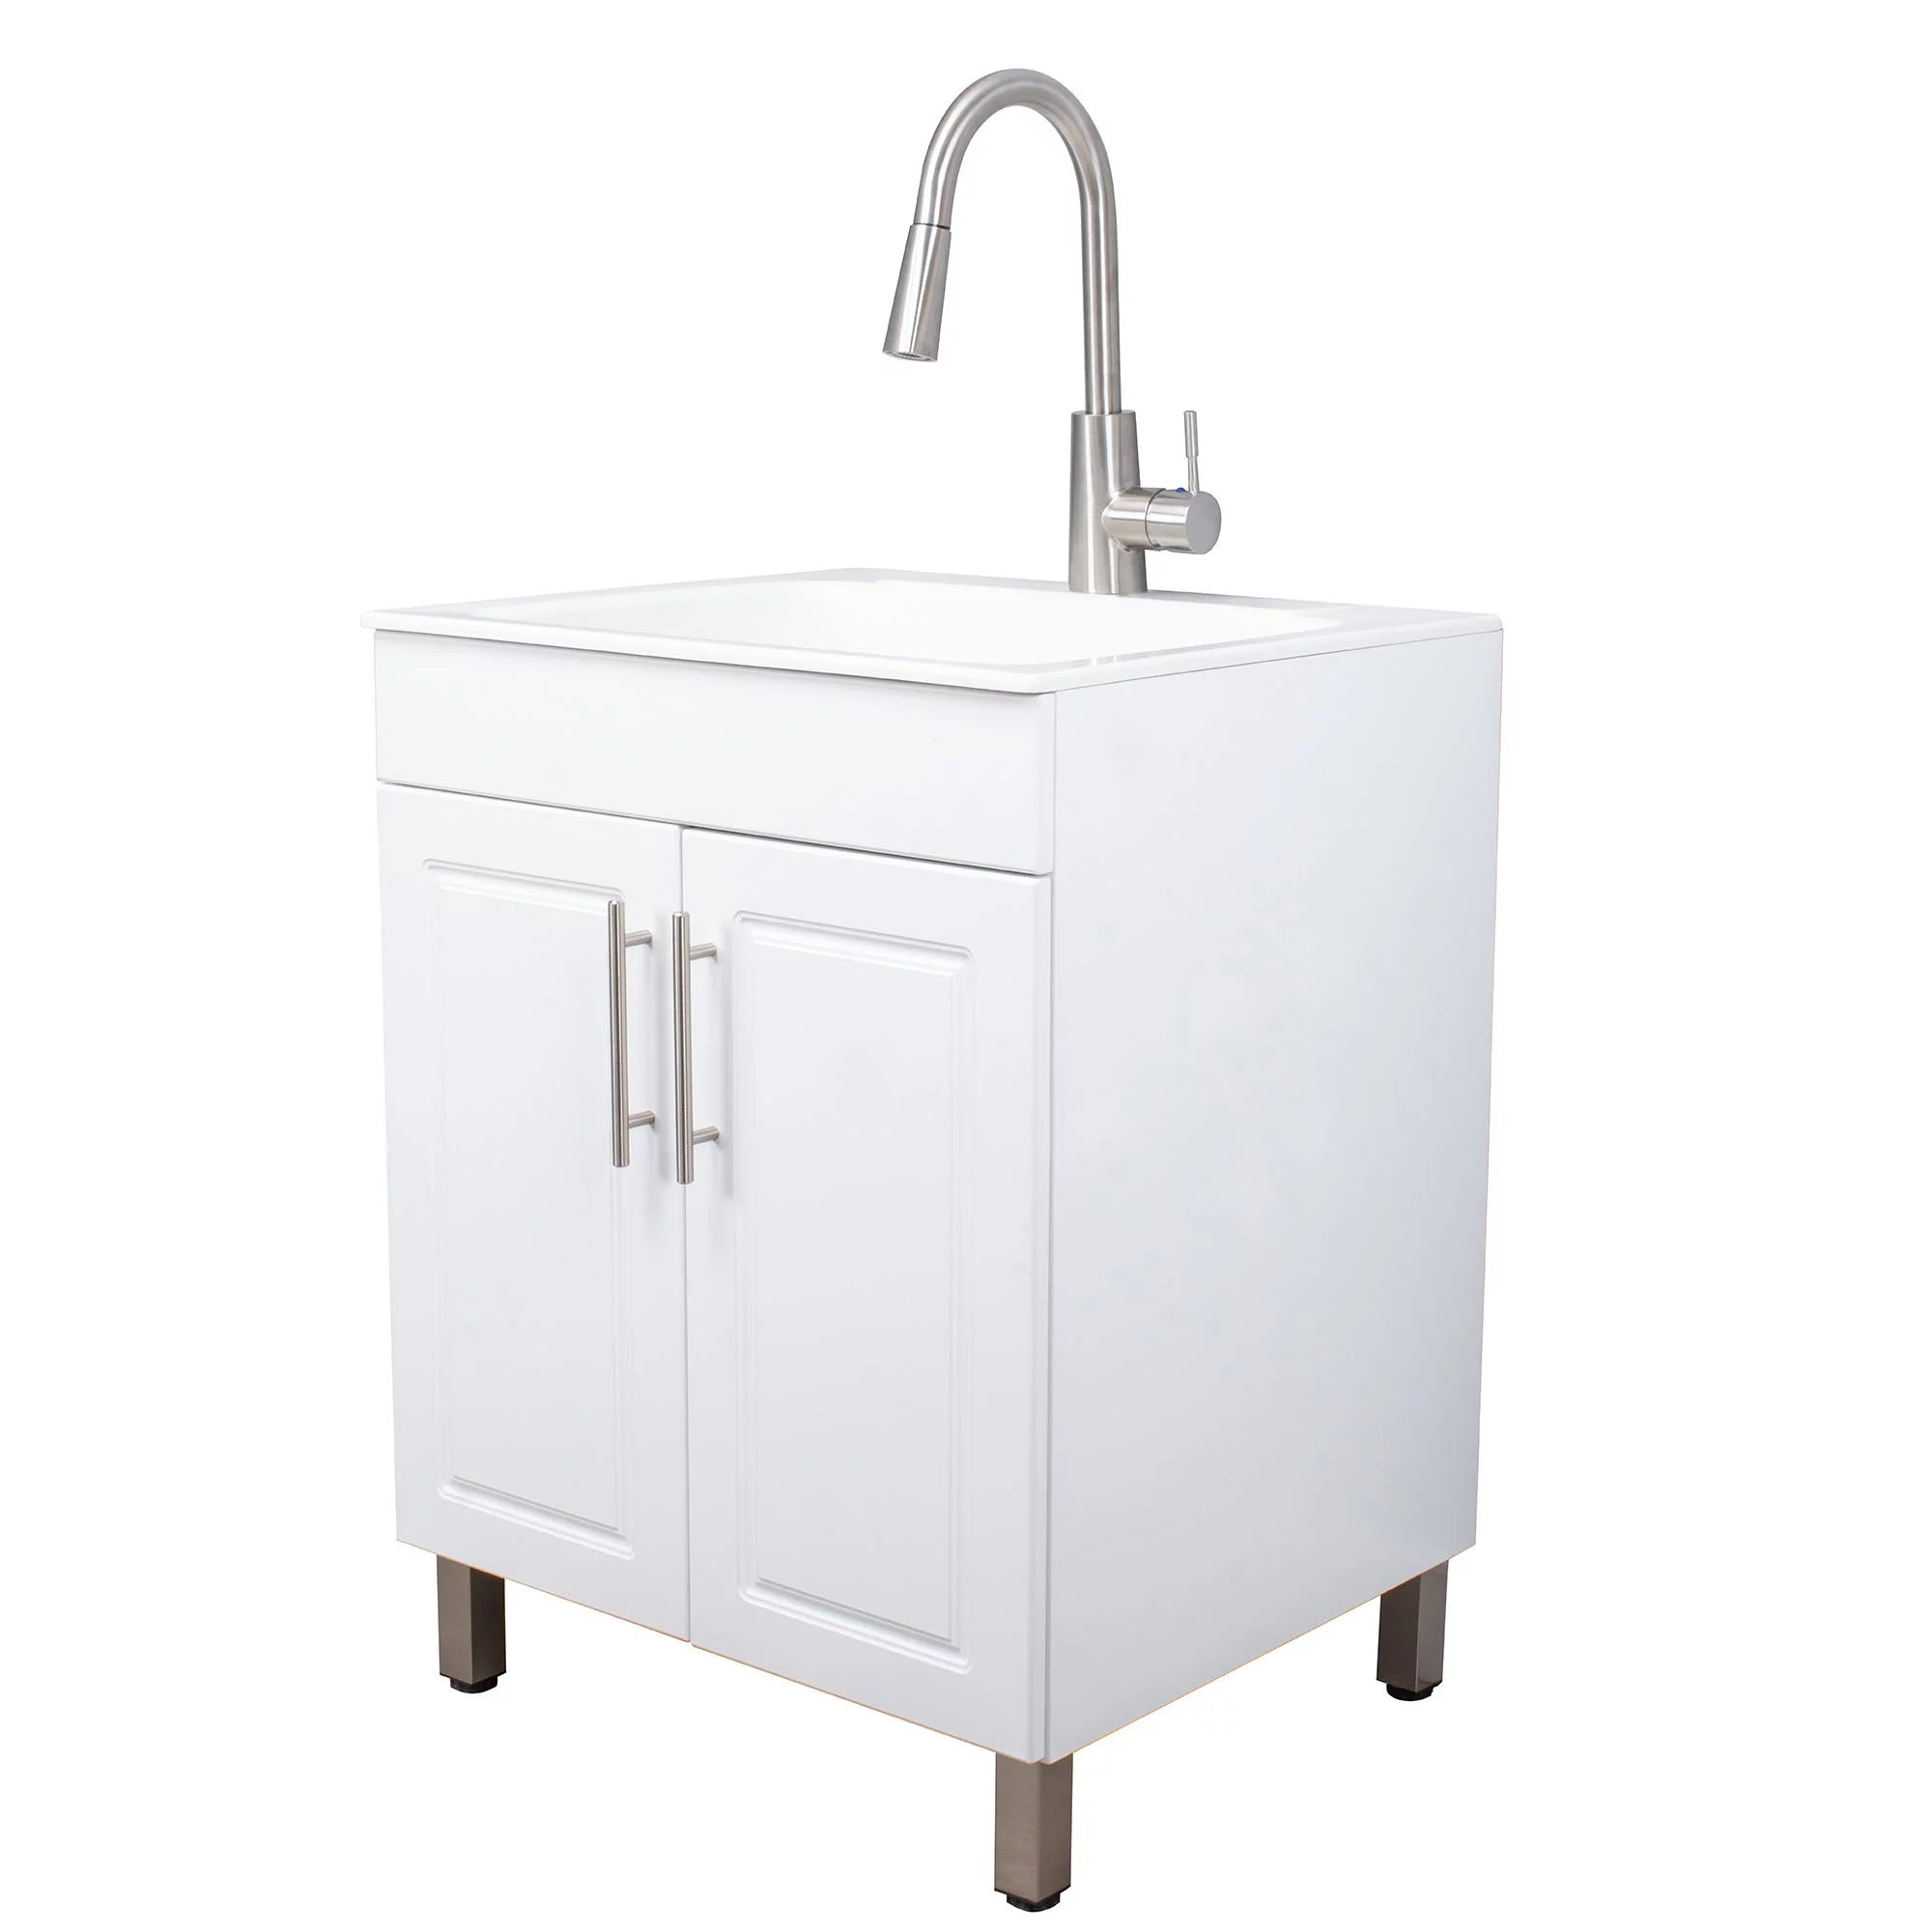 white laundry cabinet vanity utility sink with high arc stainless steel faucet and fiberglass tub walmart com